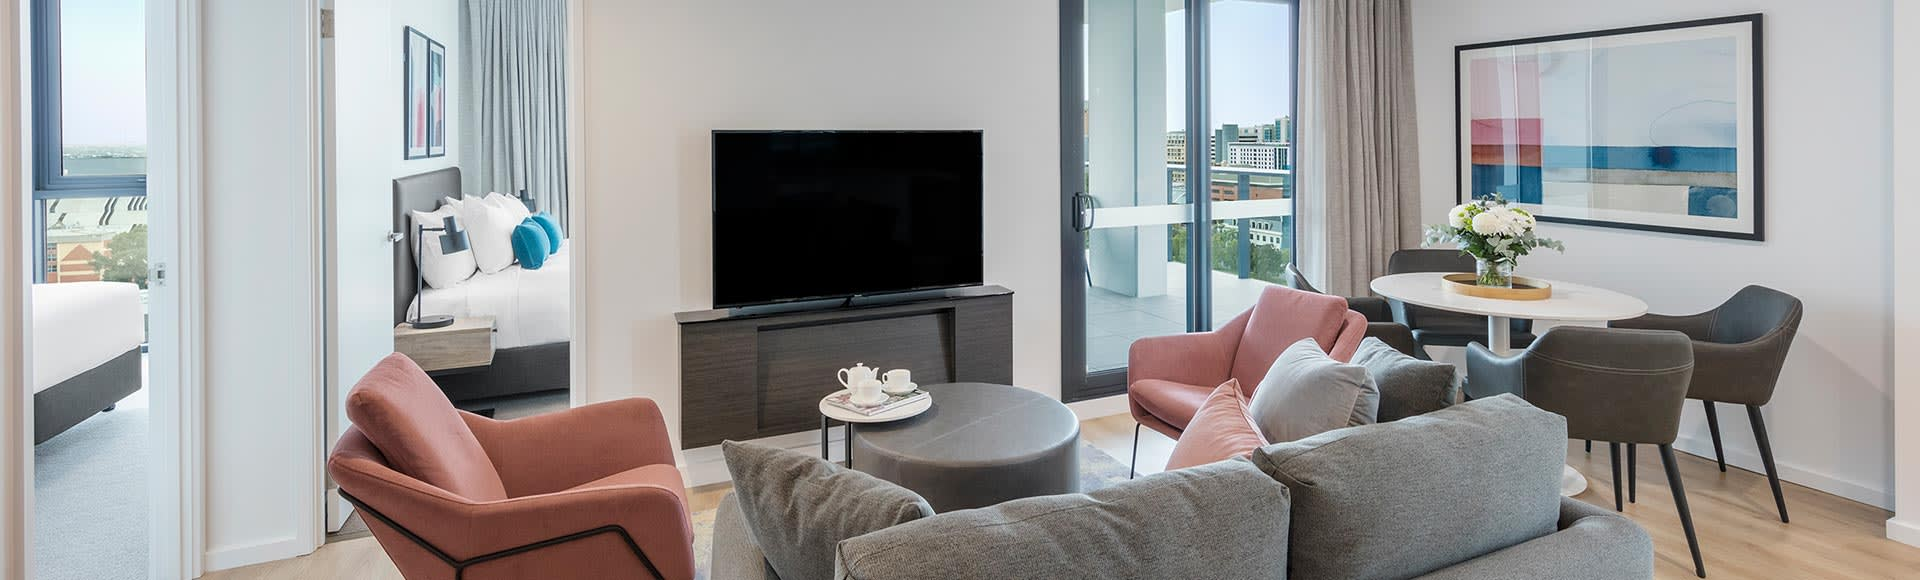 Open-space living room at Avani Adelaide